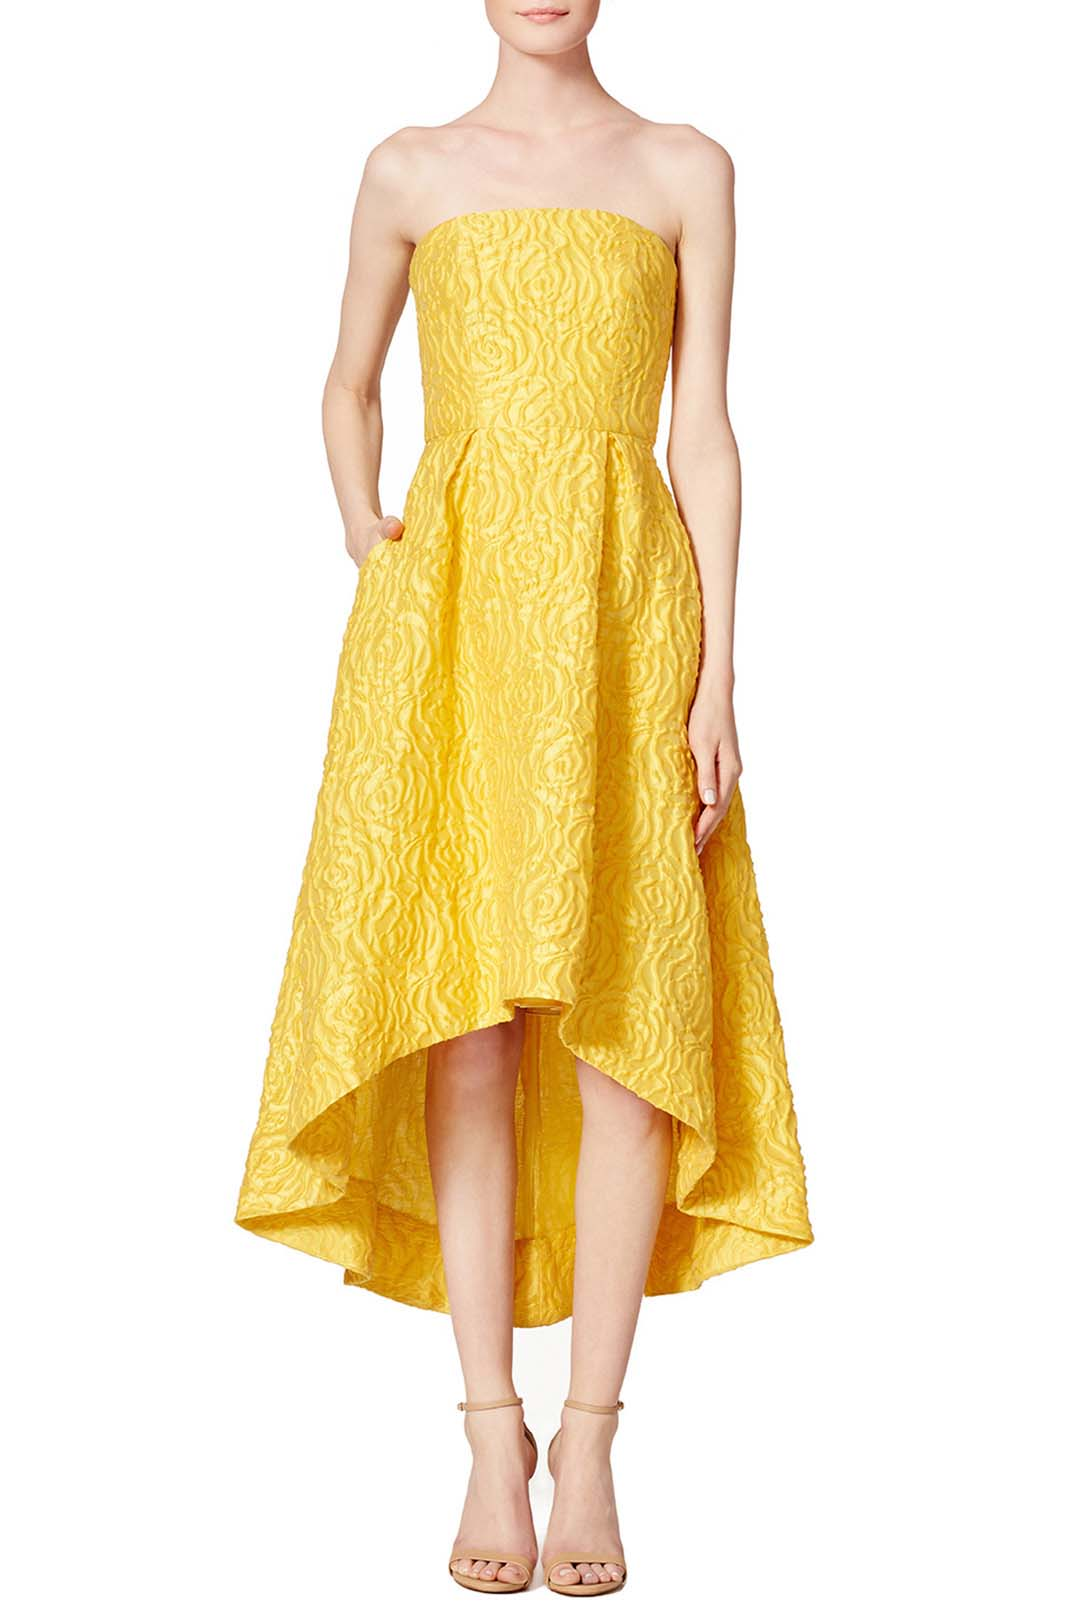 ML monique lhuillier sunshine day ball gown